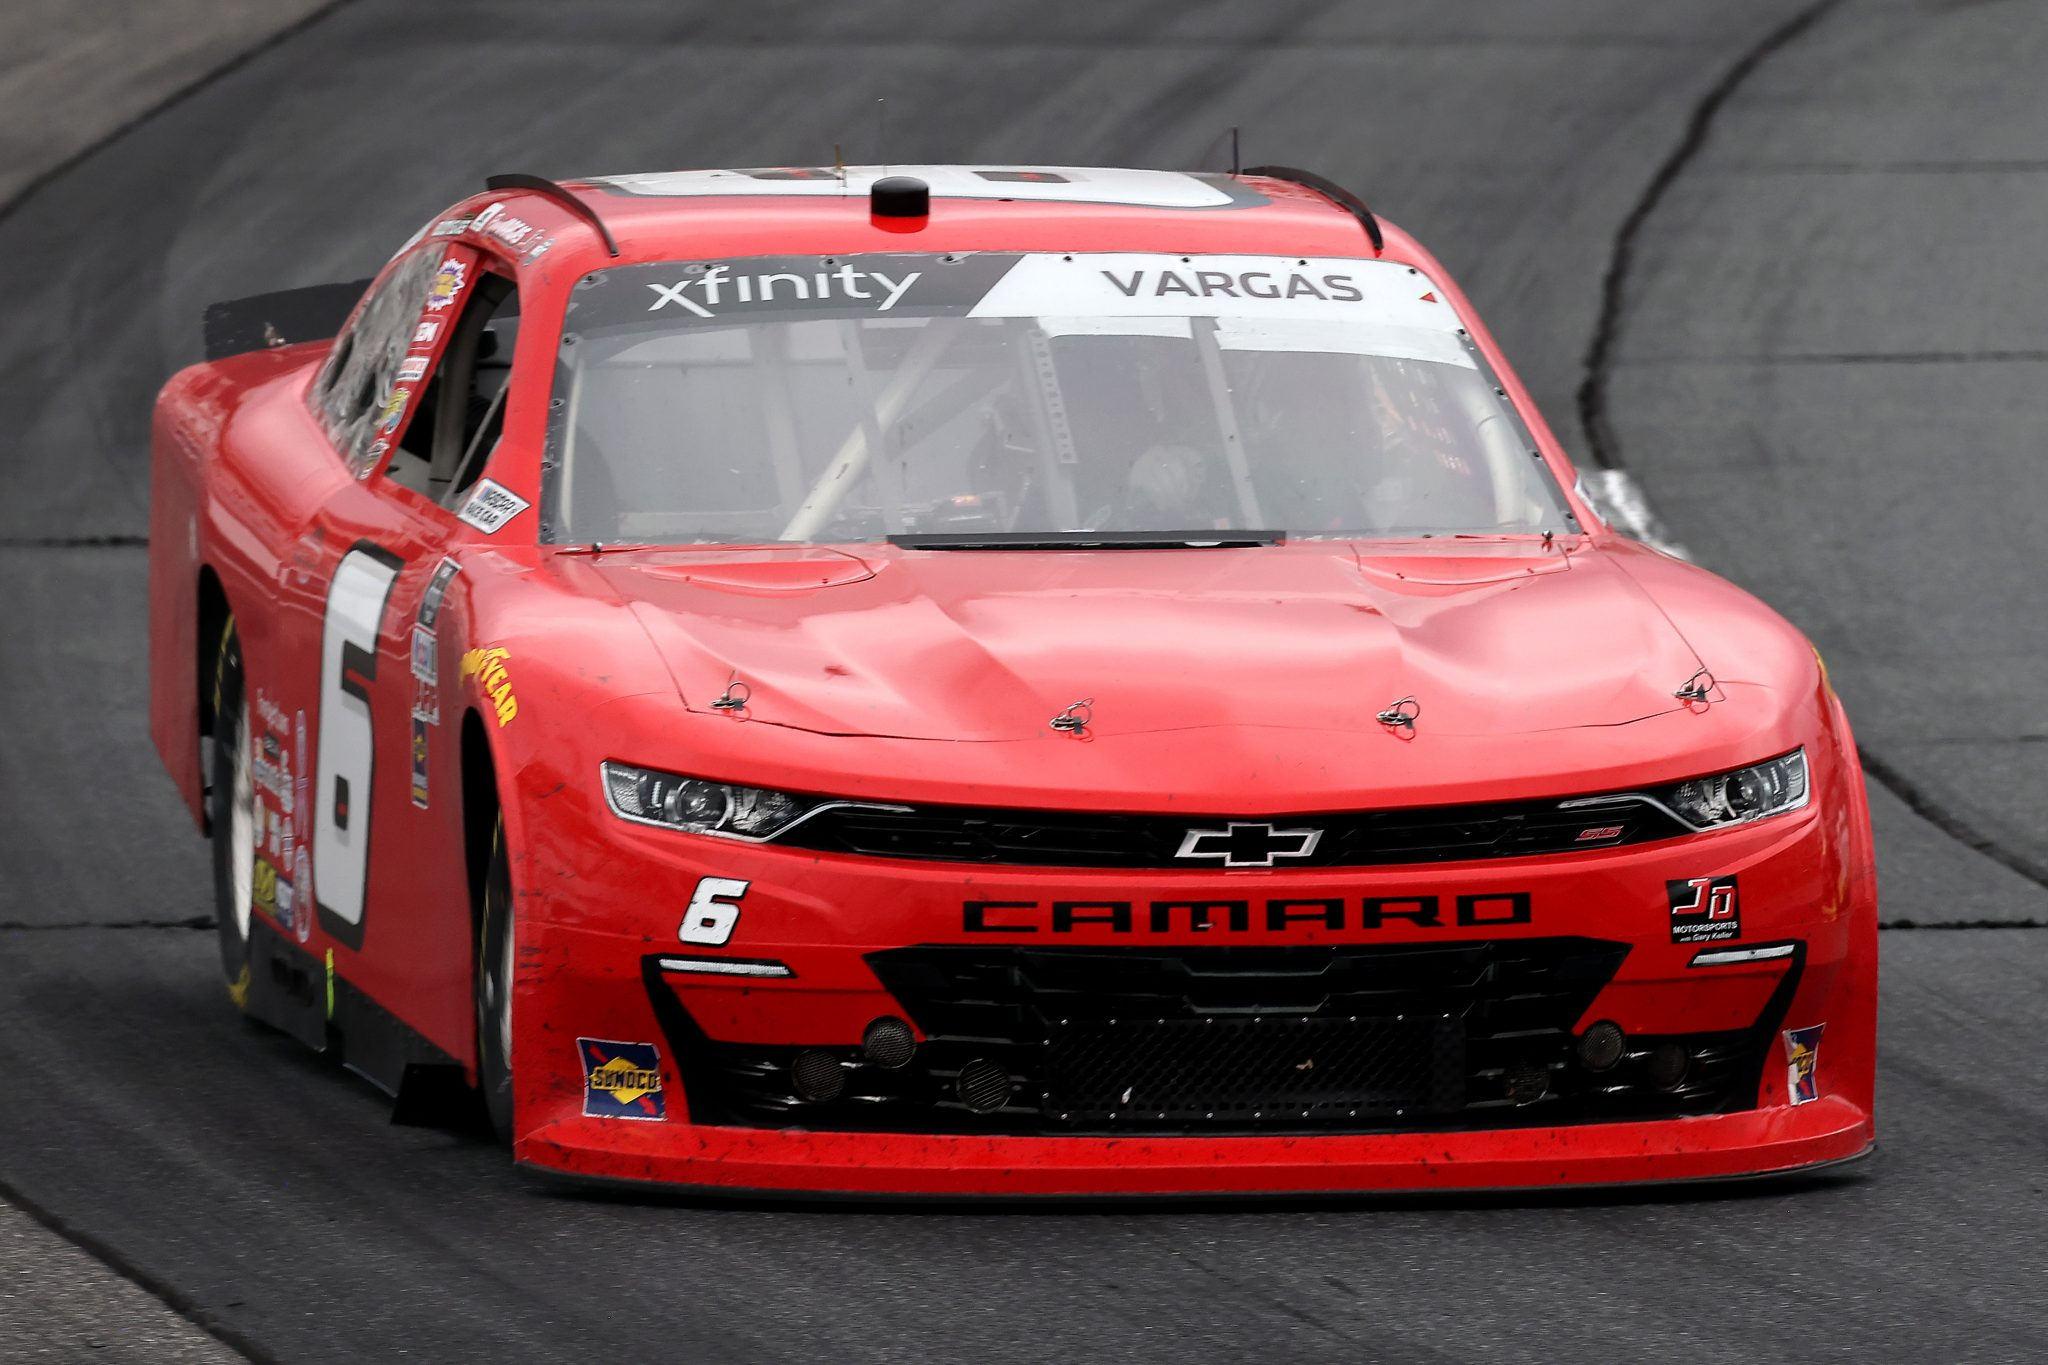 LOUDON, NEW HAMPSHIRE - JULY 17: Ryan Vargas, driver of the #6 TeamJD Motorsports.com Chevrolet, drives during the NASCAR Xfinity Series Ambetter Get Vaccinated 200 at New Hampshire Motor Speedway on July 17, 2021 in Loudon, New Hampshire. (Photo by James Gilbert/Getty Images) | Getty Images